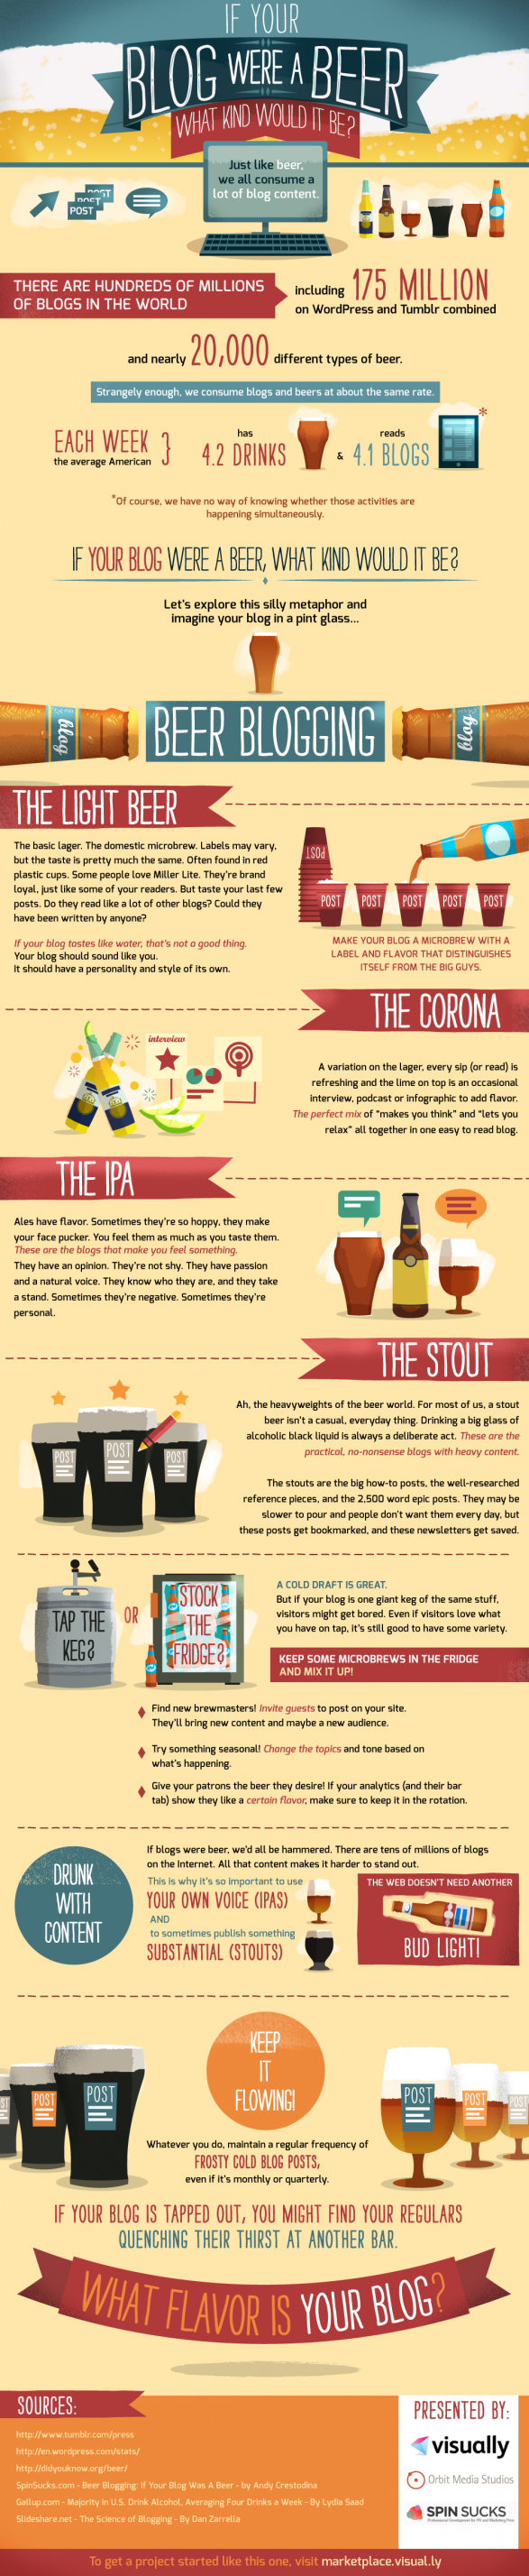 (Infographic) If Your Blog Were a Beer, What Kind Would it Be?